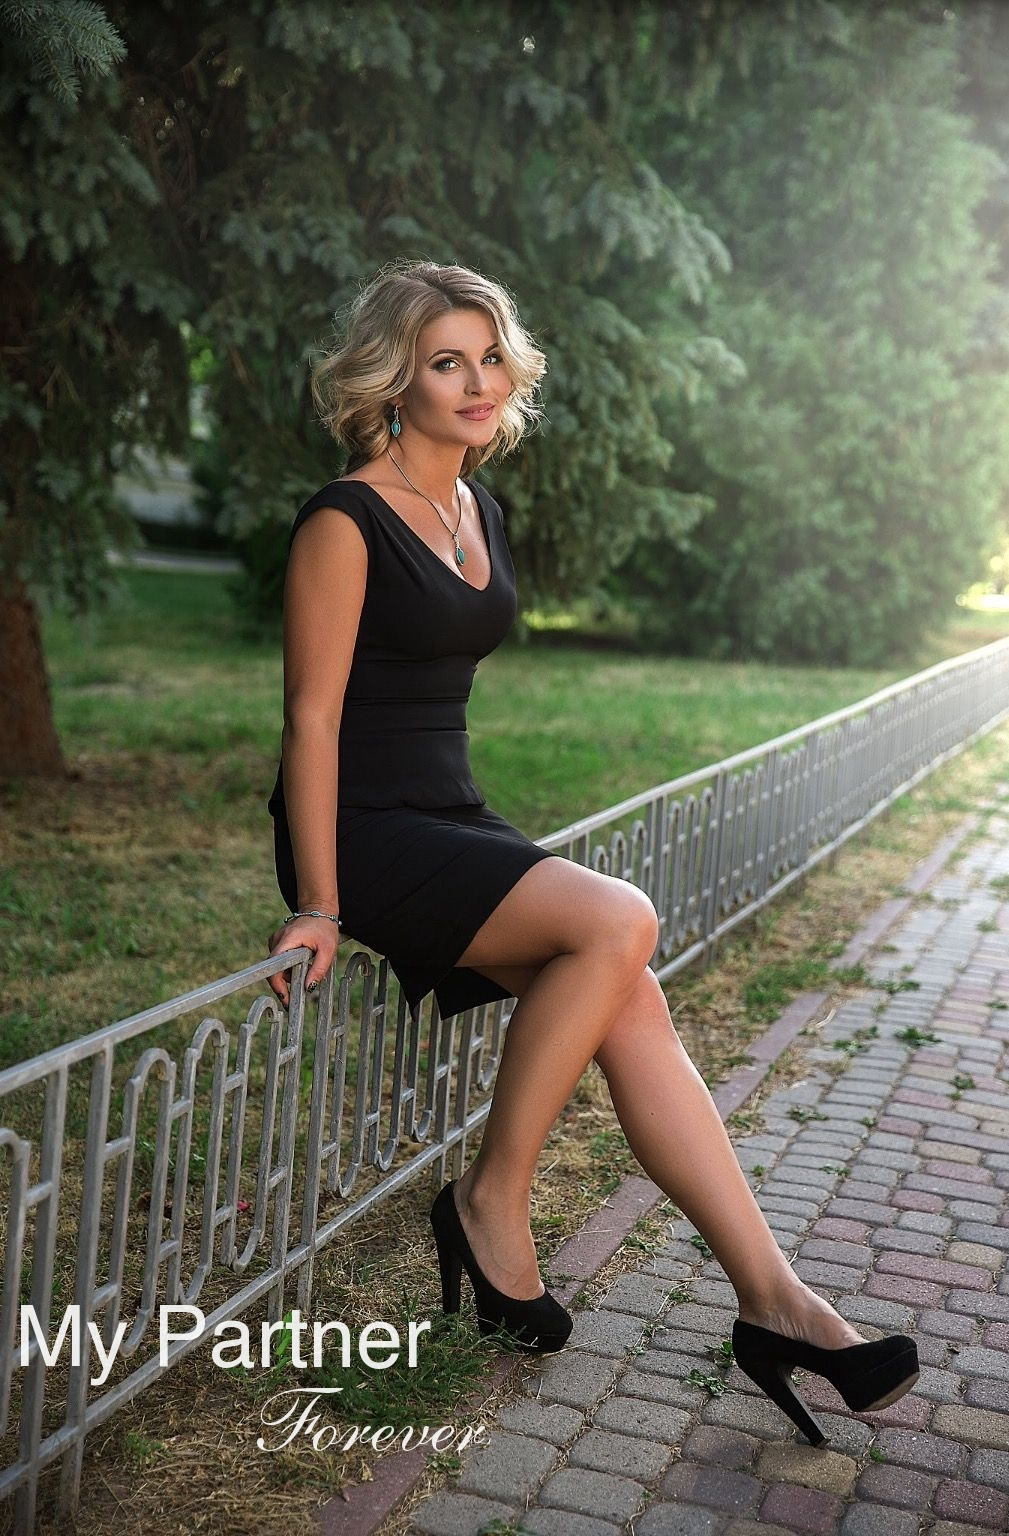 Stunning Ukrainian Woman Tatiyana from Poltava, Ukraine